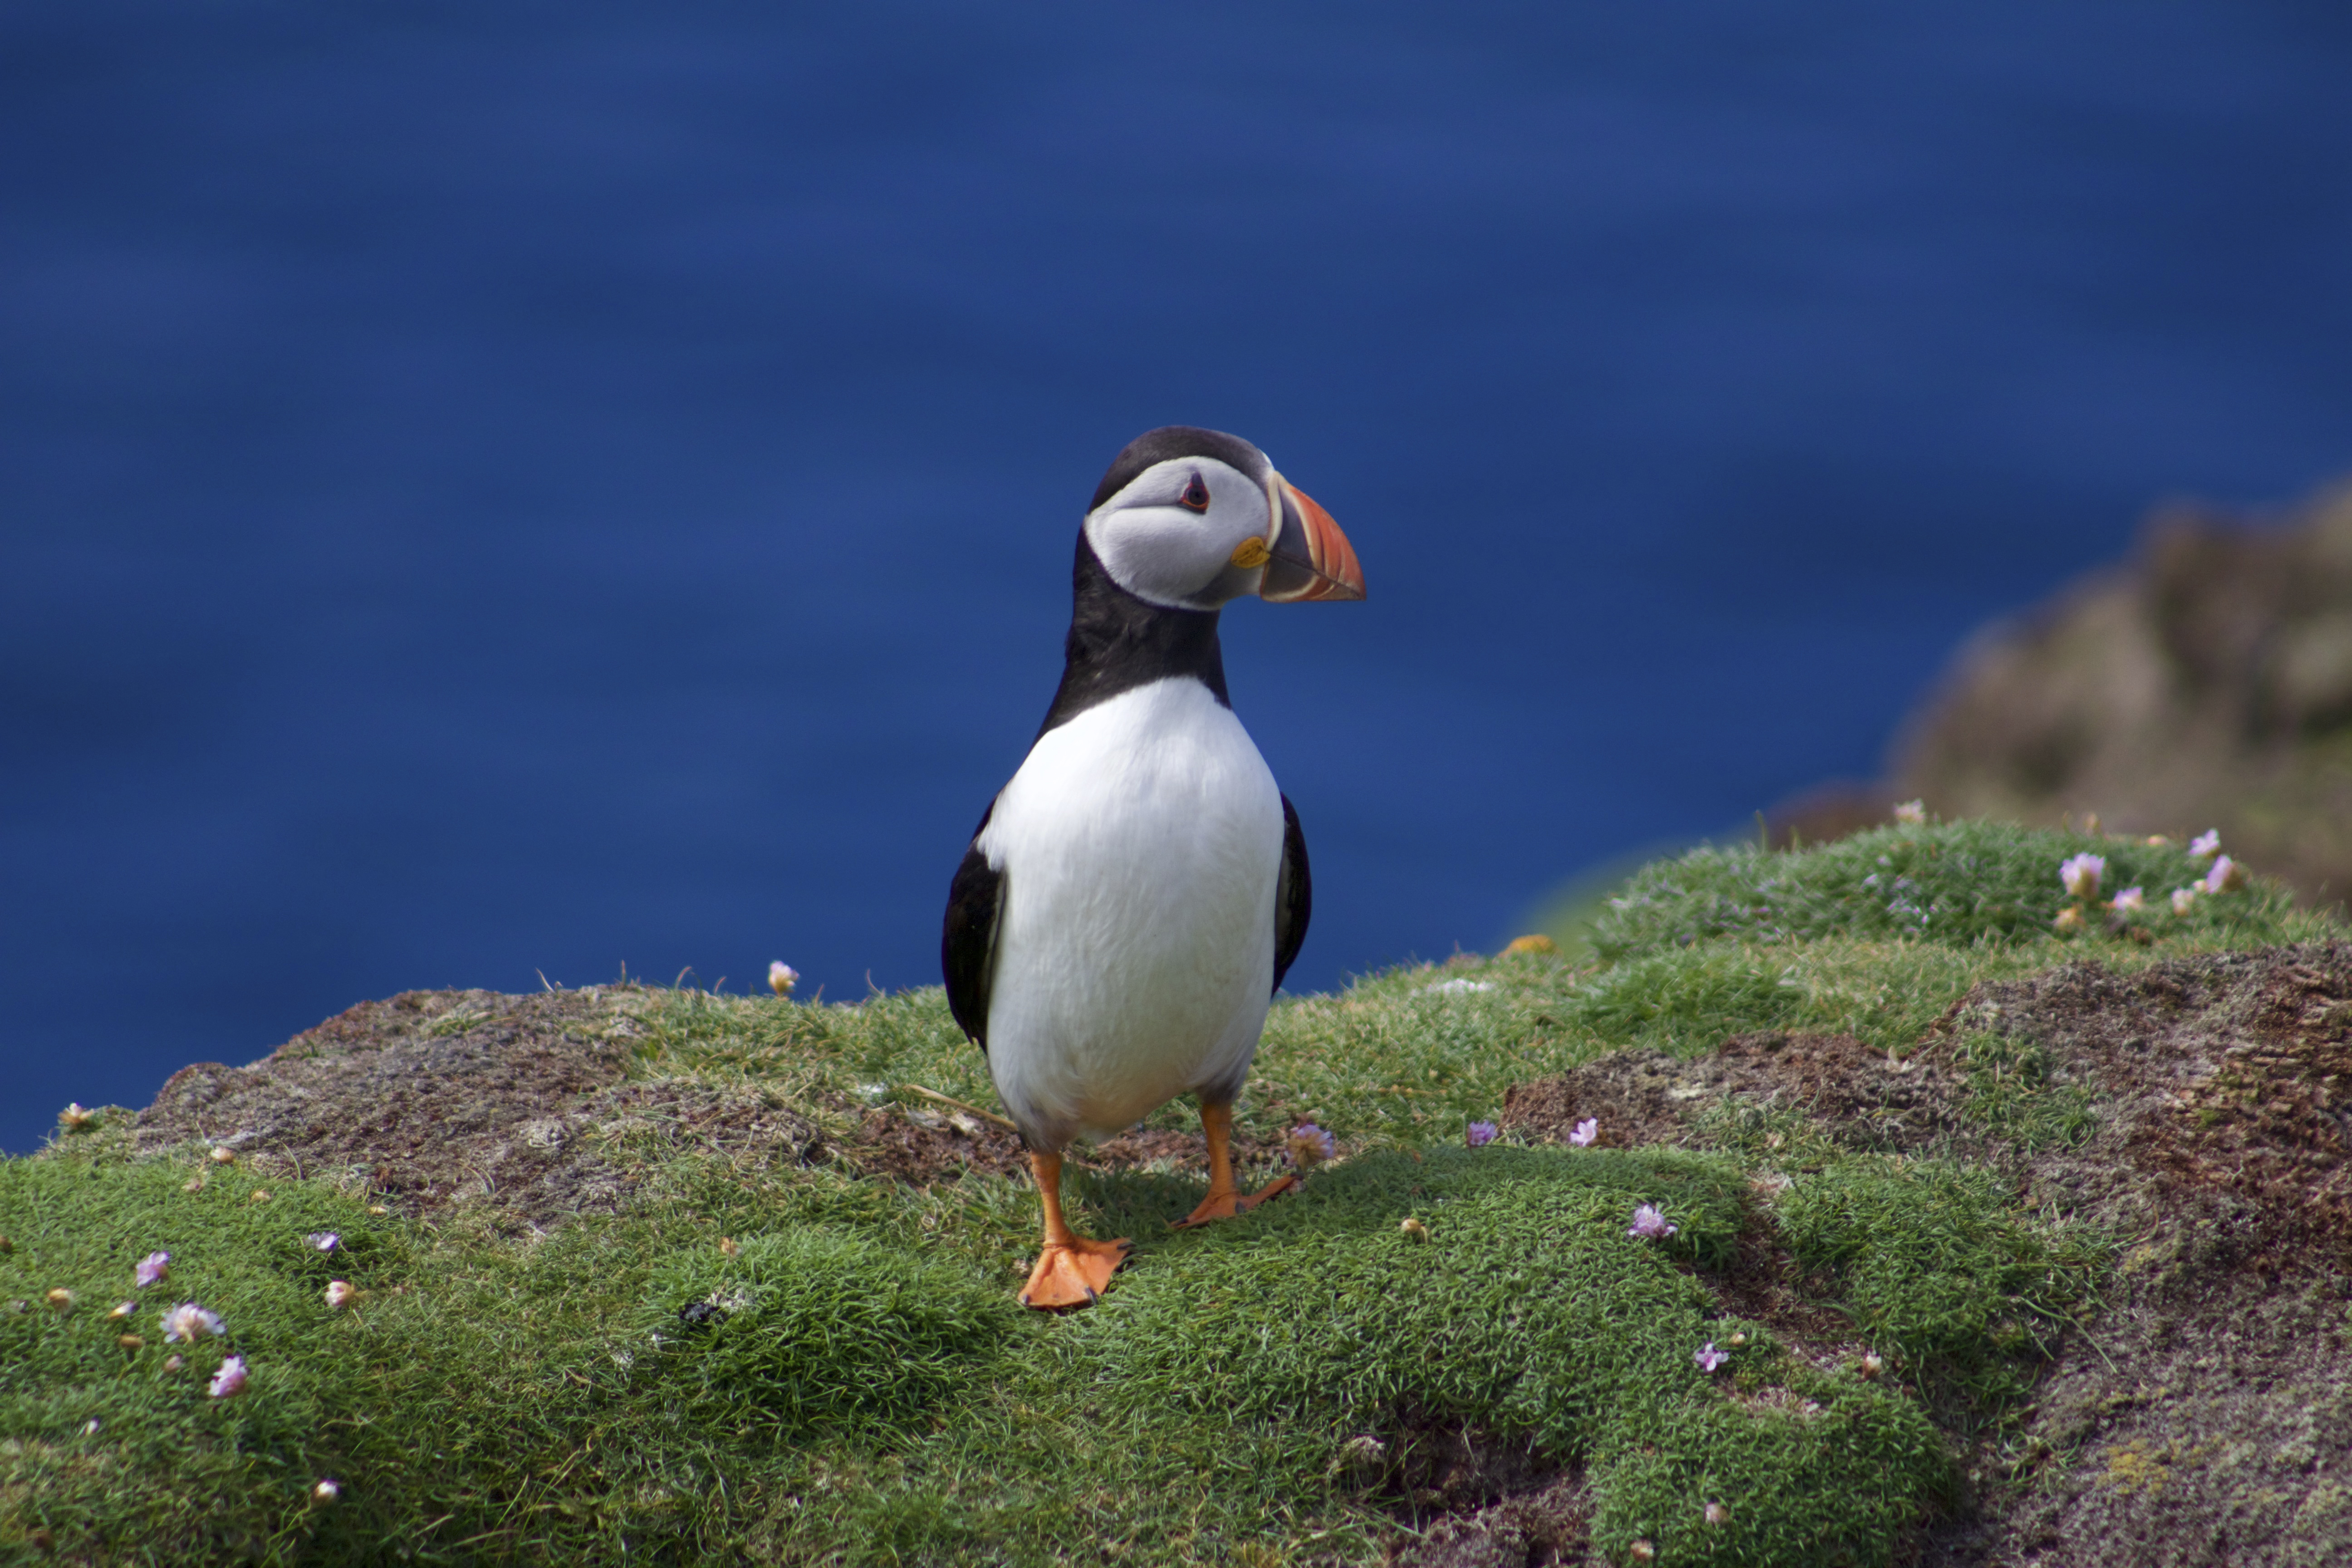 global extinction appeal save the puffins u0026 turtle doves the rspb